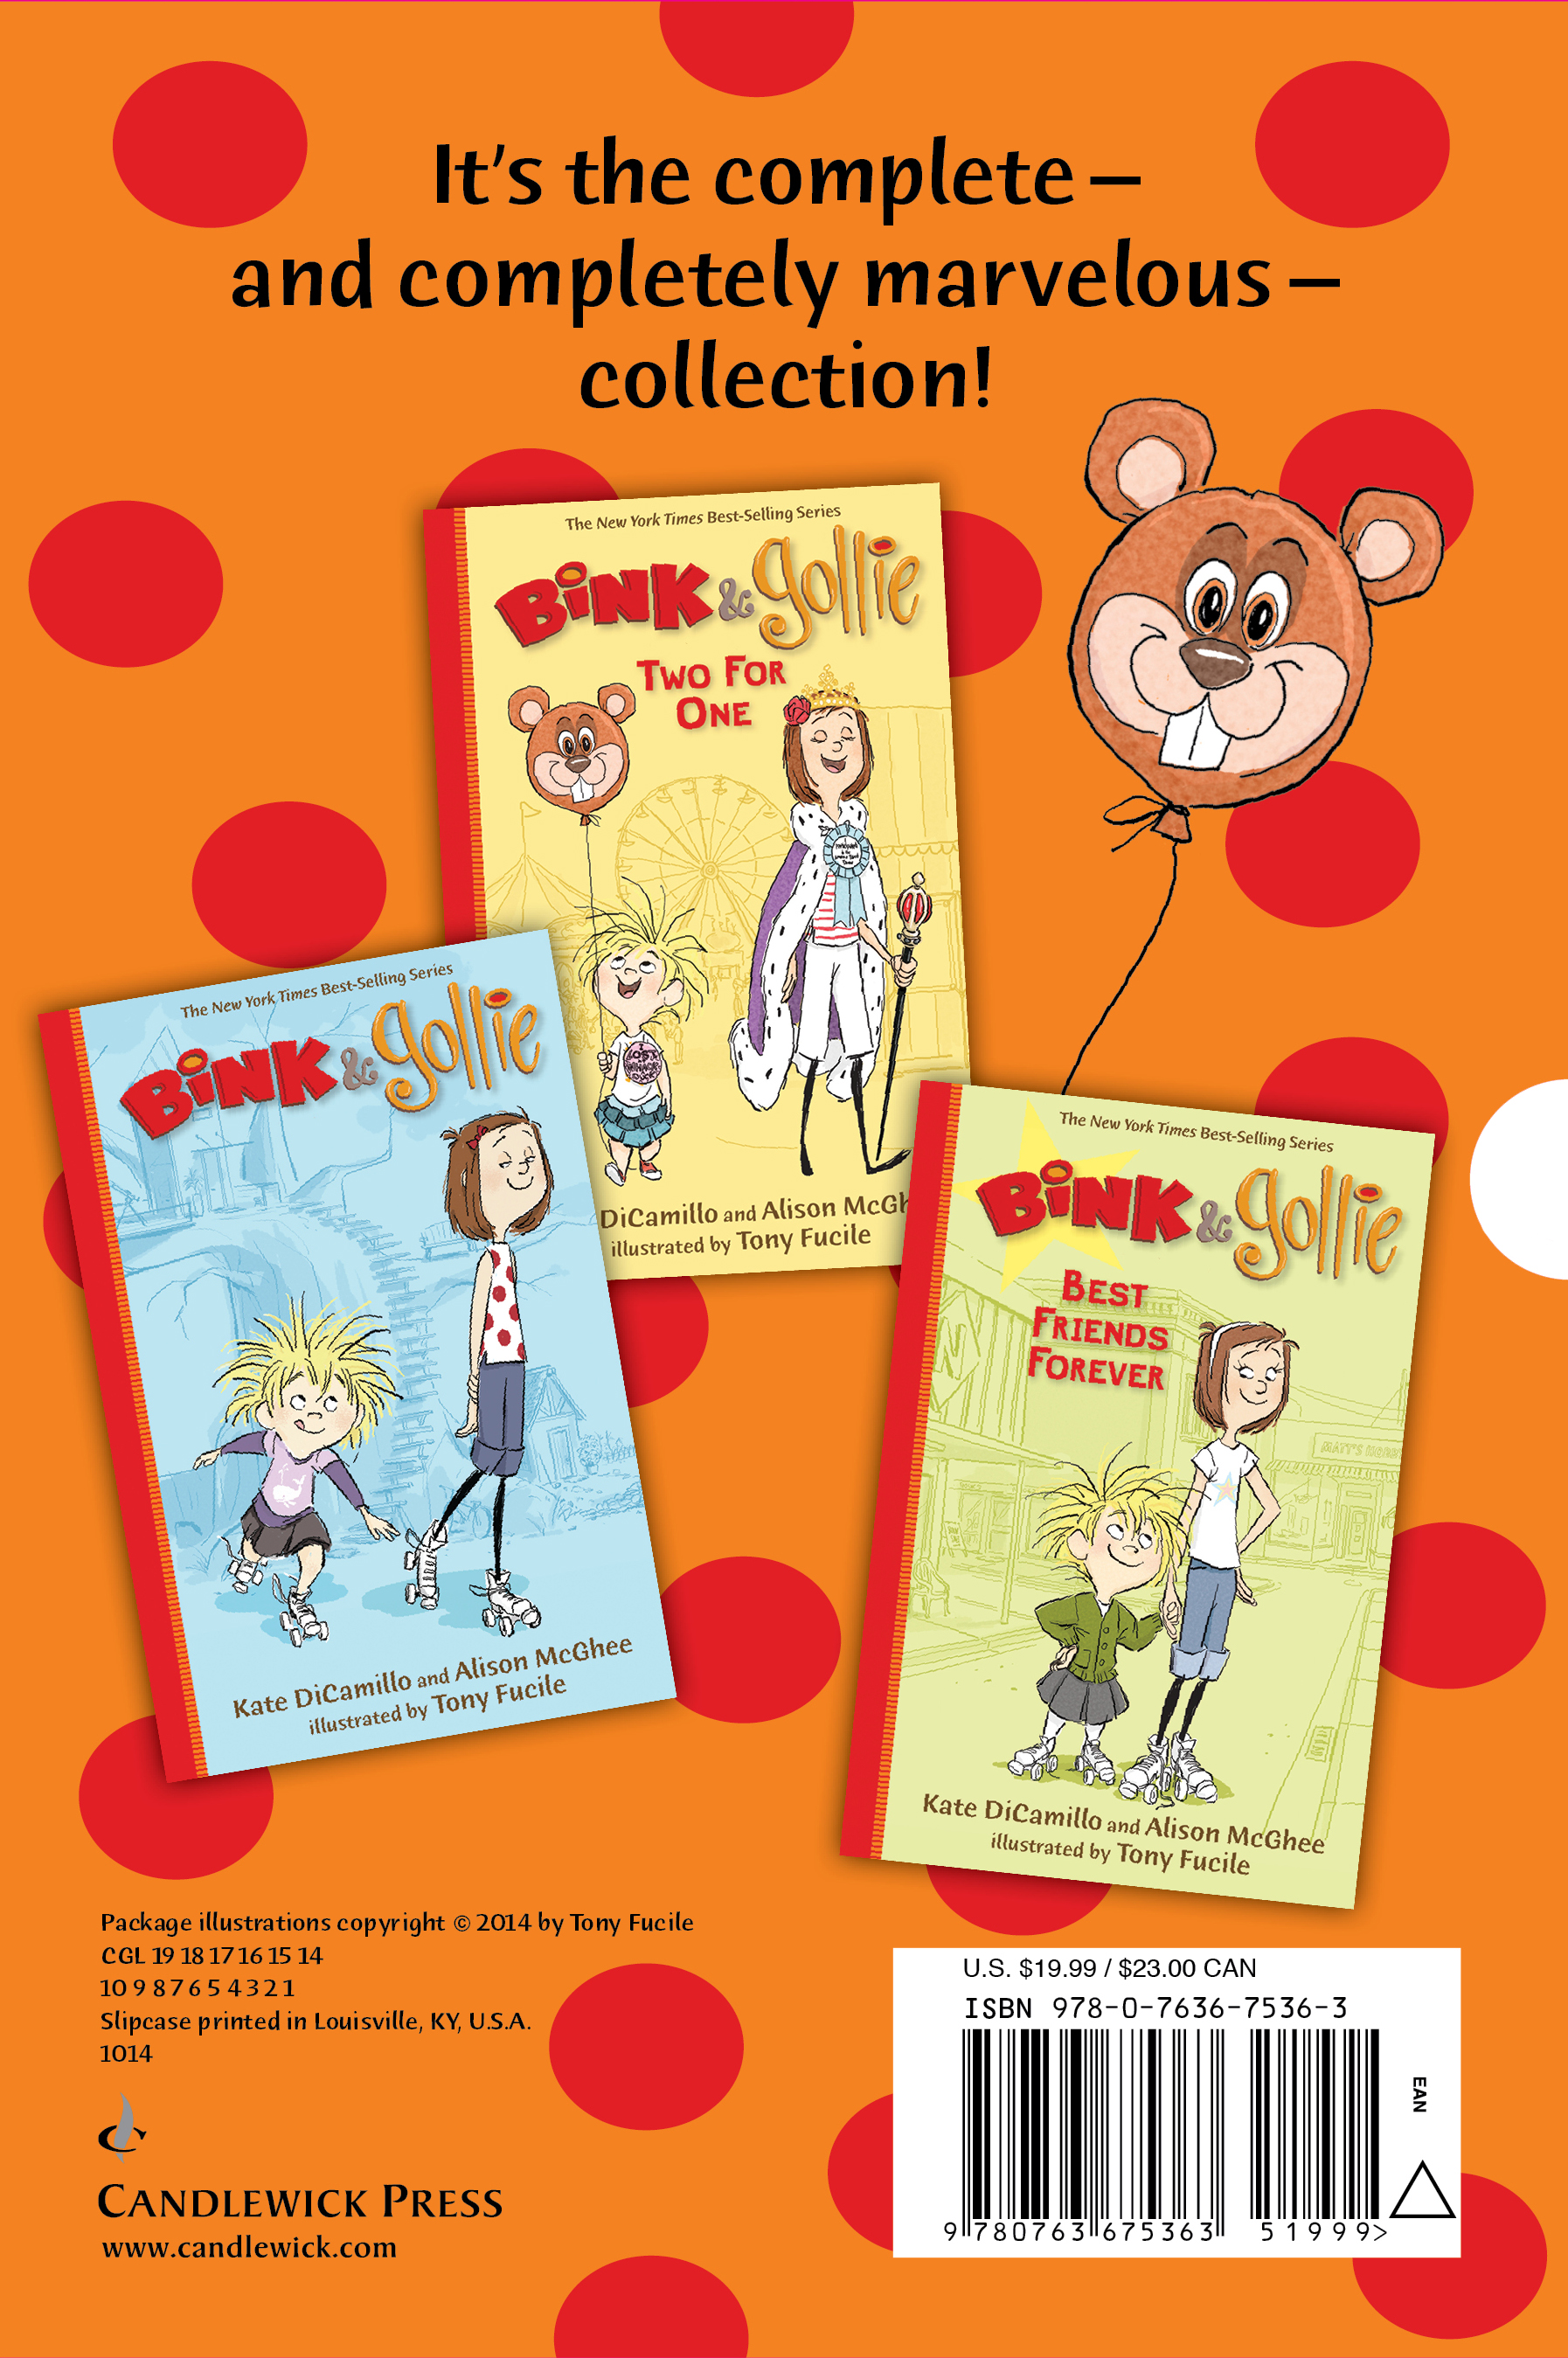 Slipcase back for BINK & GOLLIE: THE COMPLETELY MARVELOUS COLLECTION